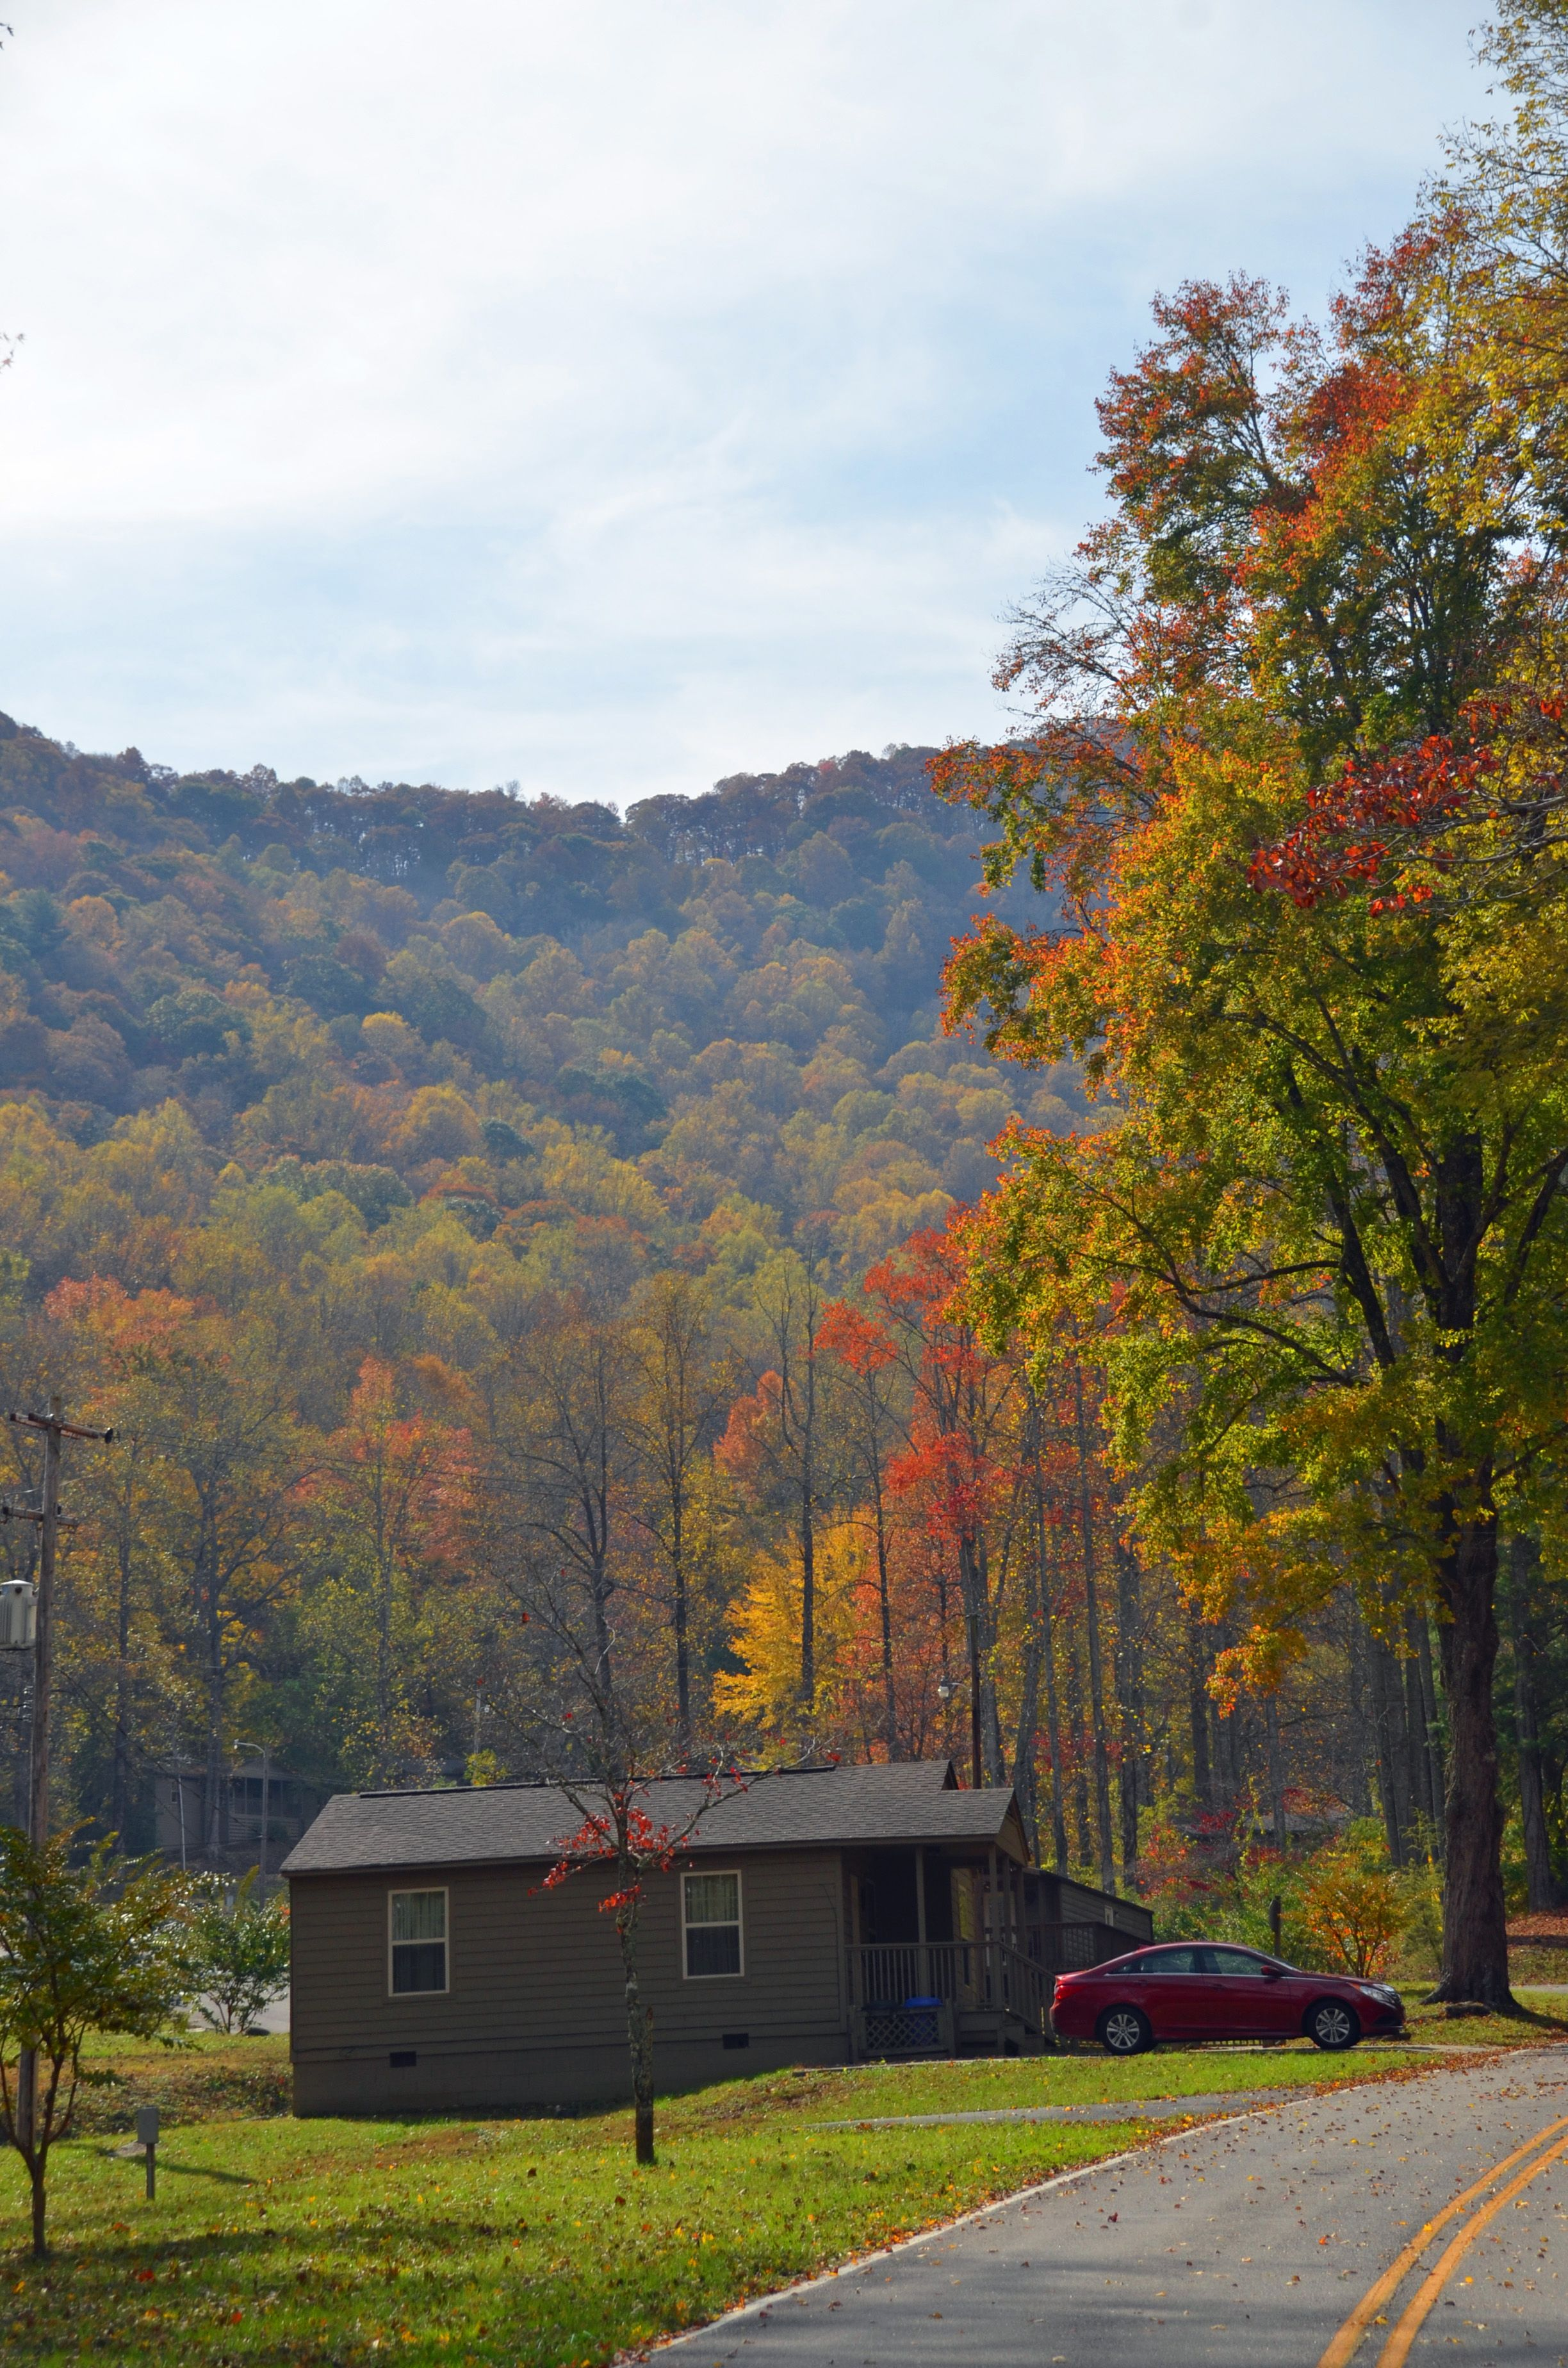 rental parkway secluded pictures rock blowing serenityridge north creek blue fall ridge at near serenity carolina vacation cabin nc r boone s cabins htm